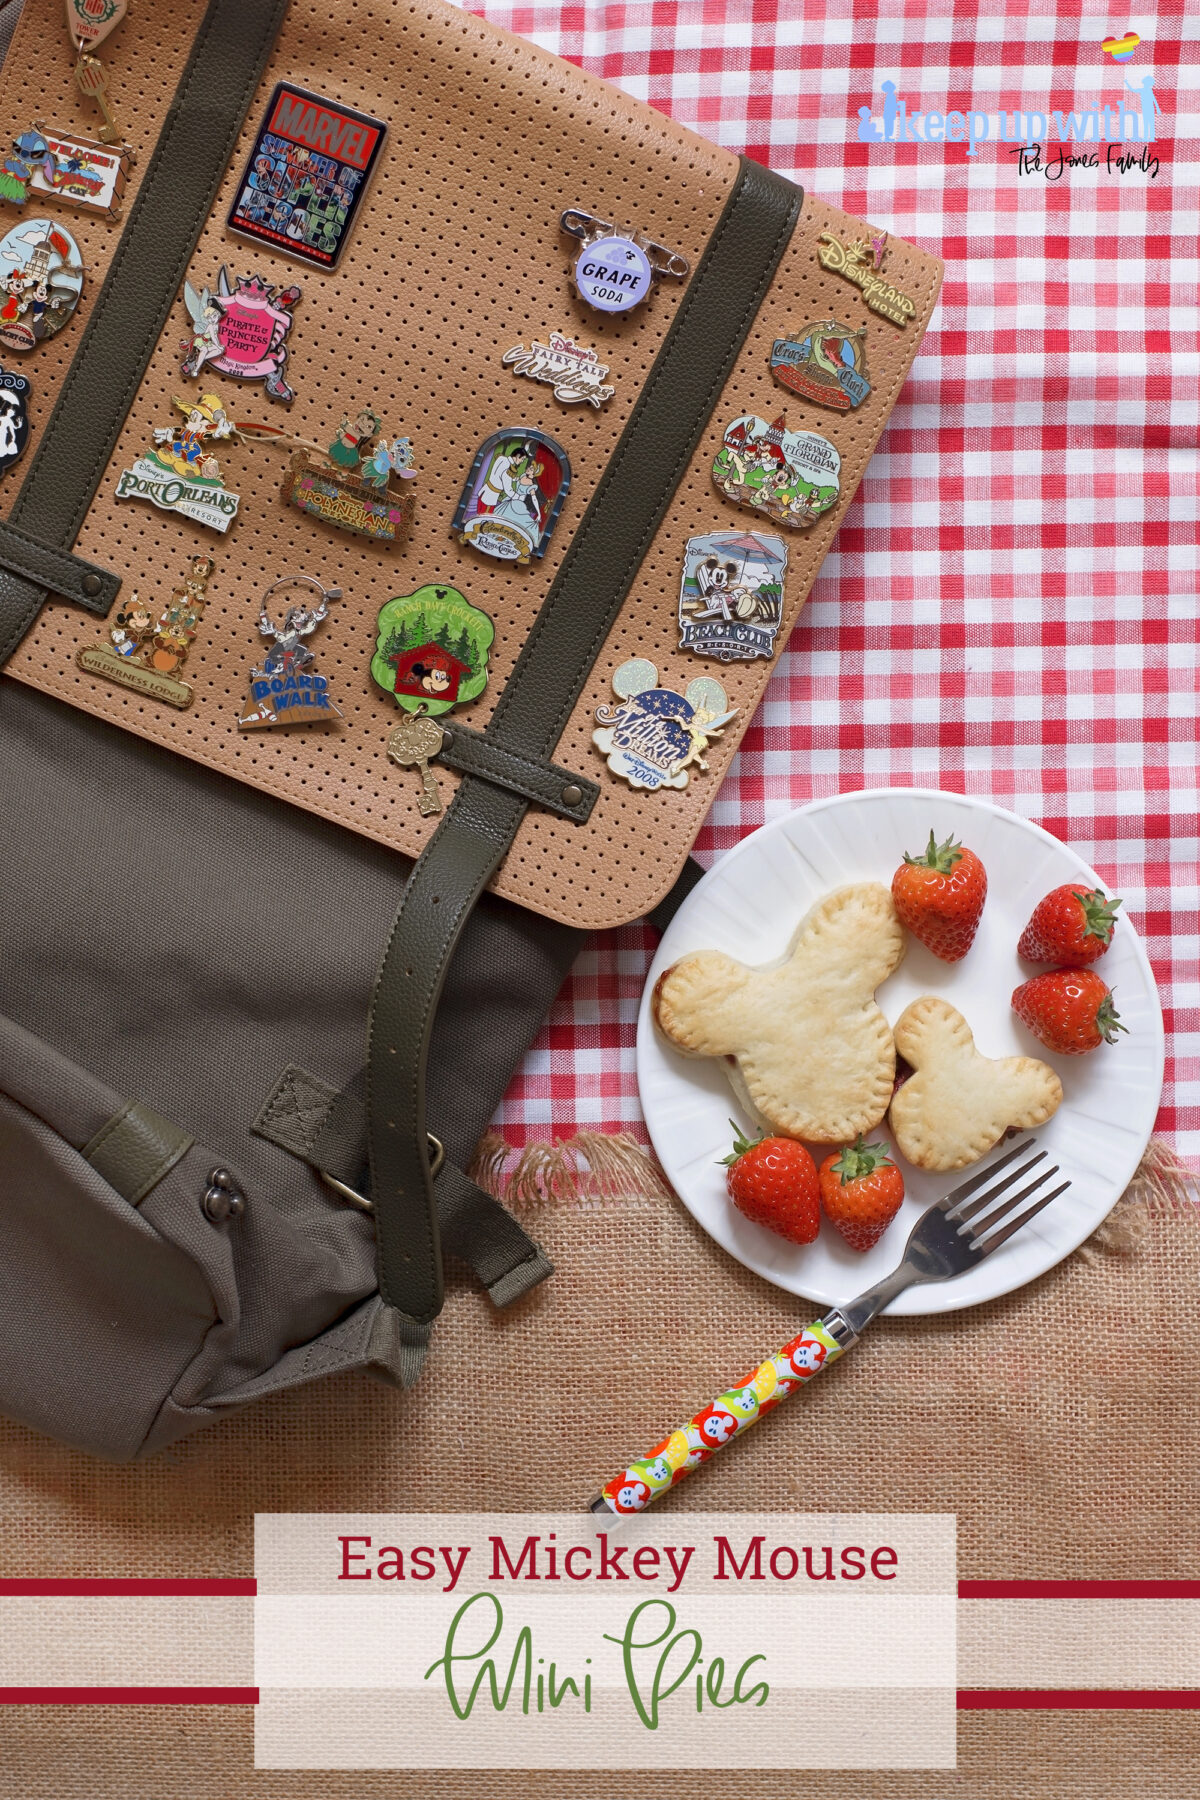 Image shows a flatlay of a red gingham checked tablecloth, overlaid with a jute burlap material with a fringe. On top is a ShopDisneyUK rucksack with many Disney pins from Disney's fairytale weddings, Port Orleans, Castaway Cay, Disneyland Hotel, Cinderellas Table and many more. Next to the bag is a white Vera Wang sideplate with two Mickey Mouse shaped shortcrust pies on. One is larger than the other. There is a ShopDisney fork balancing on the plate with a summer citrus and apples pattern on it.  The image is watermarked by Keep up with the Jones Family.